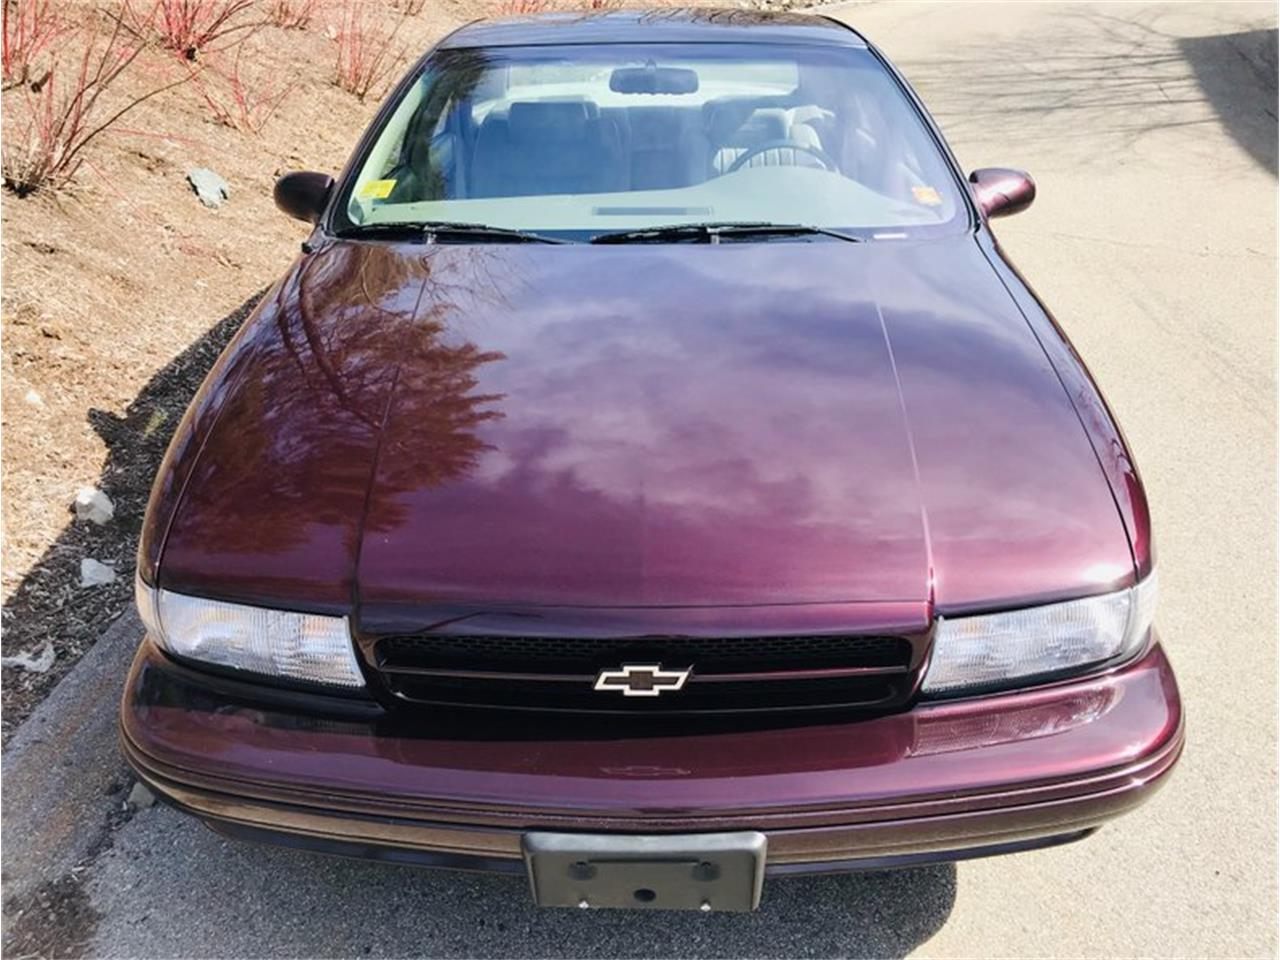 Large Picture of 1996 Impala - $25,500.00 Offered by Classic Motorcars - PT5K